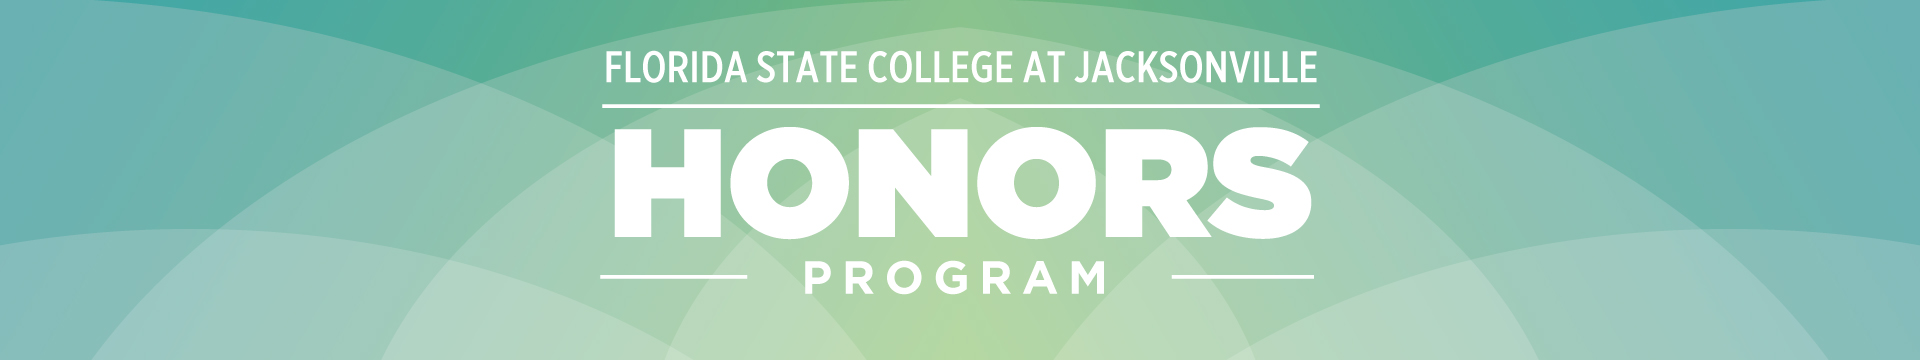 Florida State College at Jacksonville Honors Program